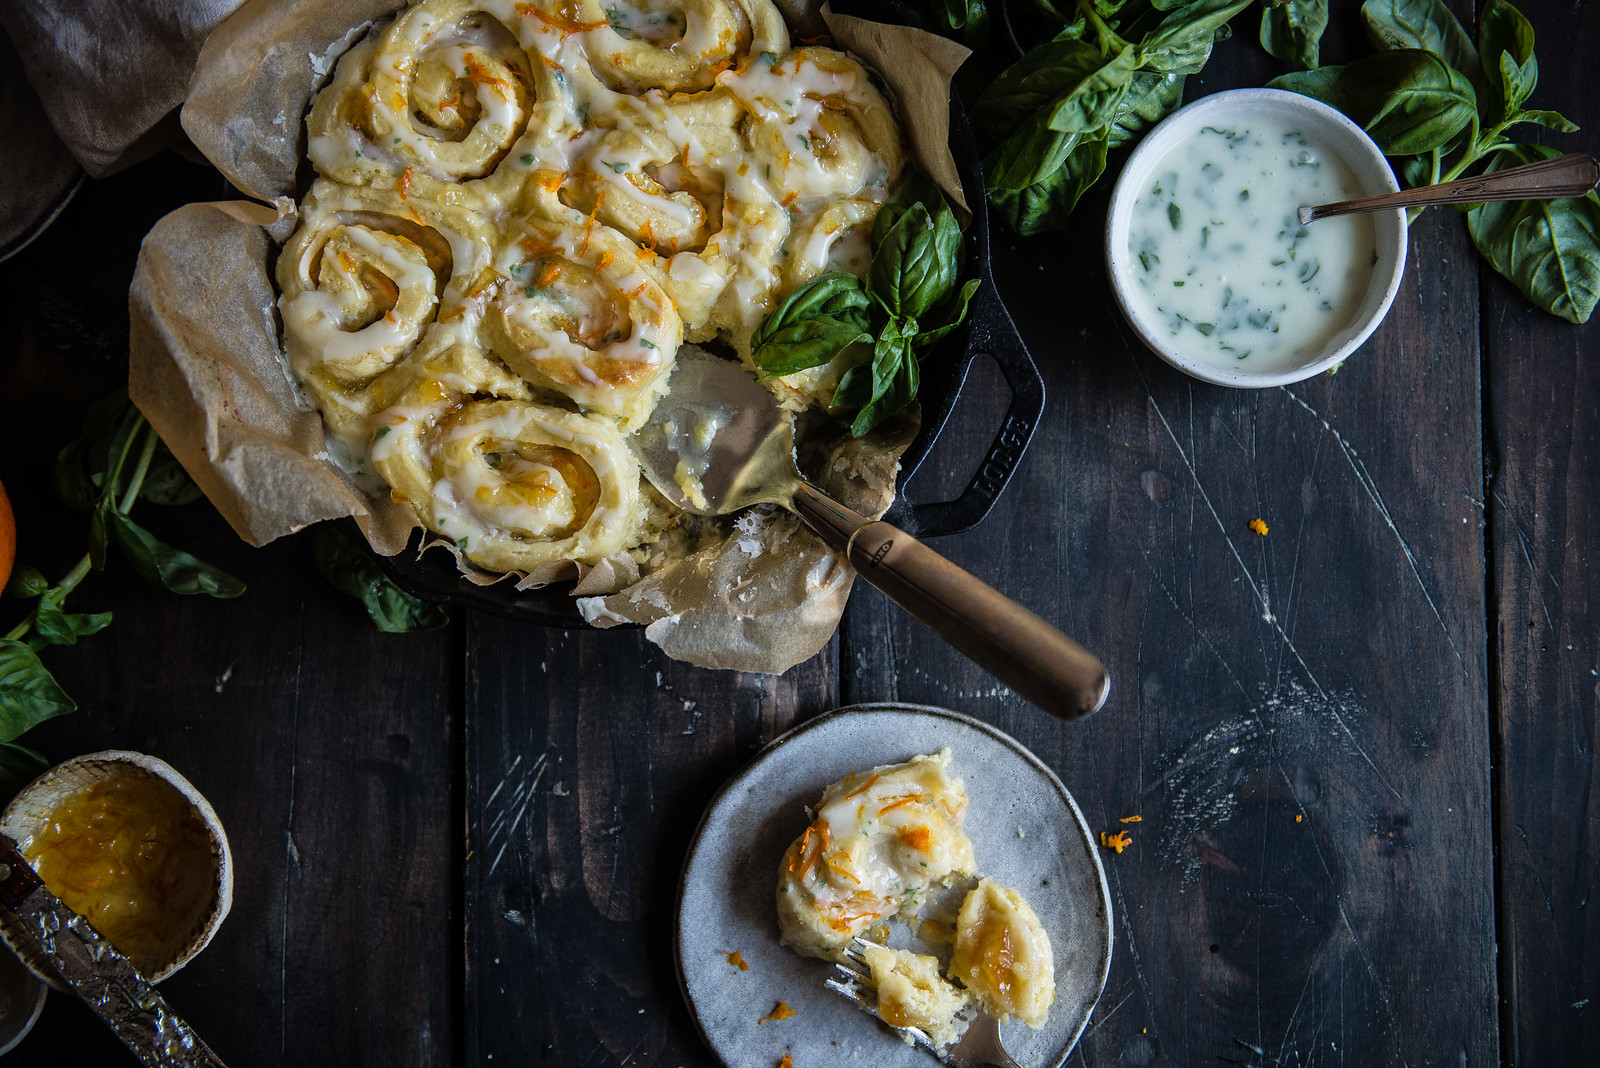 orange-almond sweet rolls with basil glaze | two red bowls